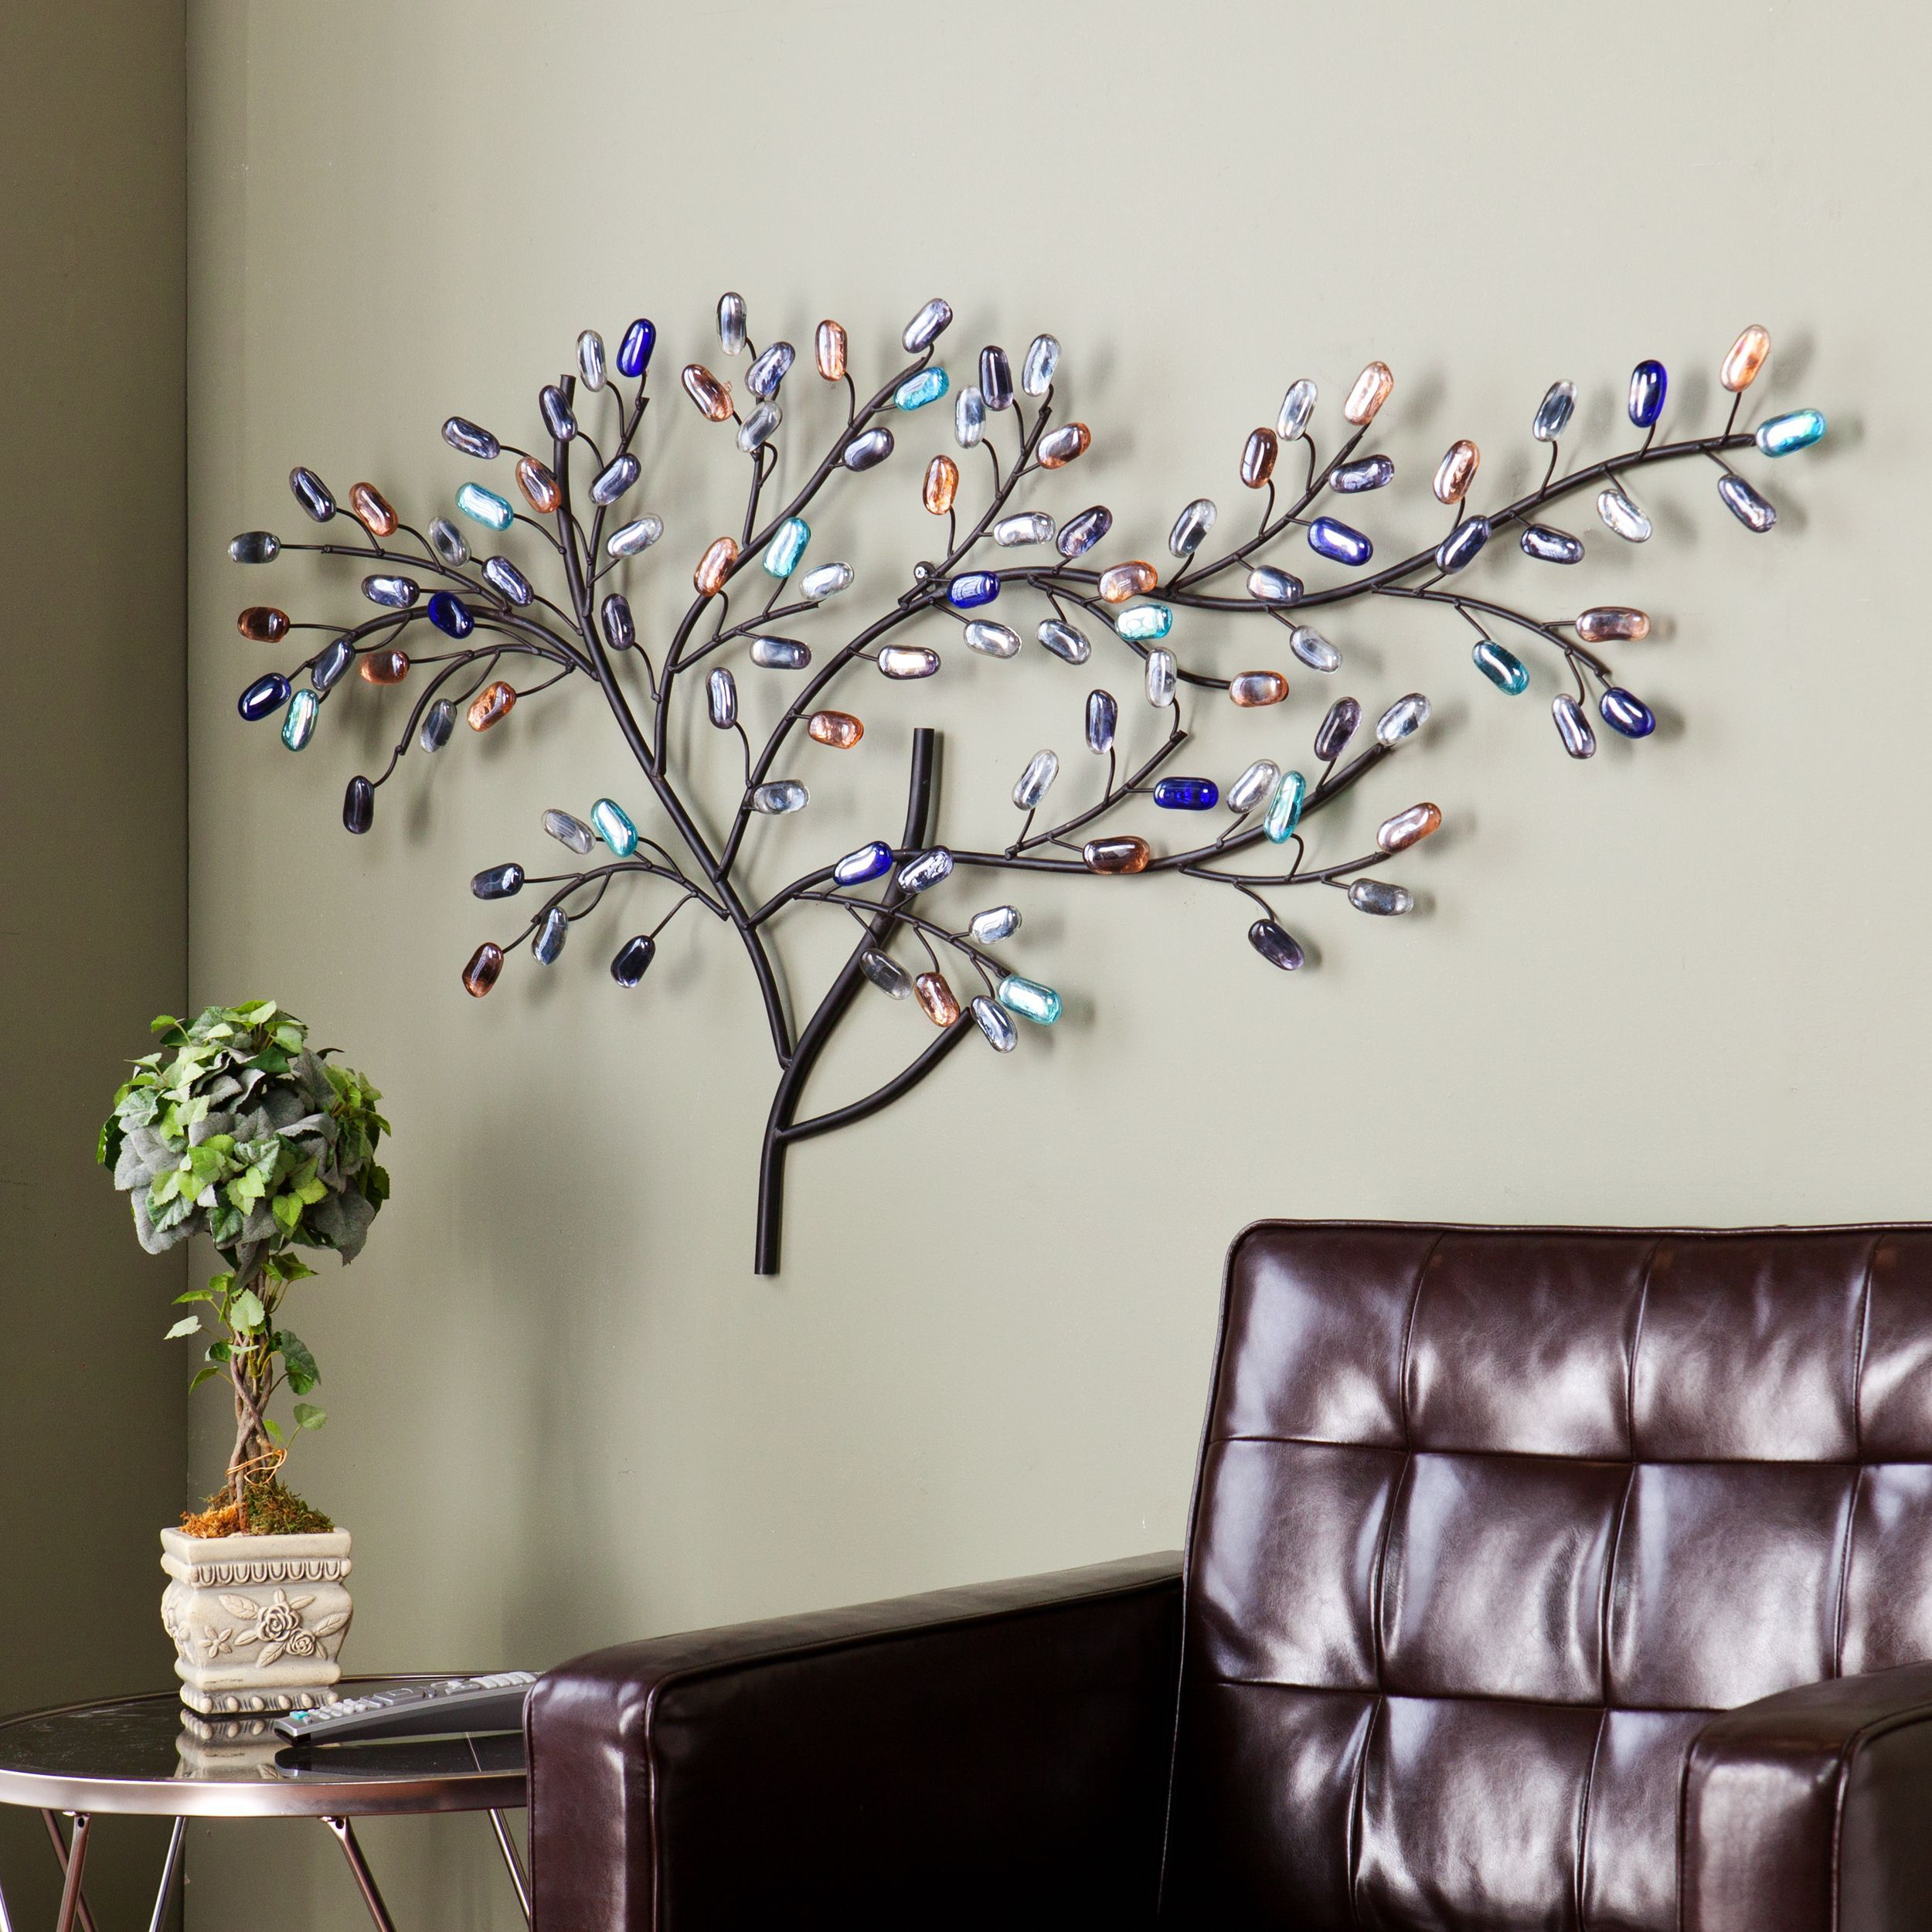 This Upton Home Willow Multicolor Metal/ Glass Tree Wall Intended For Metal Leaf Wall Decor By Red Barrel Studio (View 29 of 30)